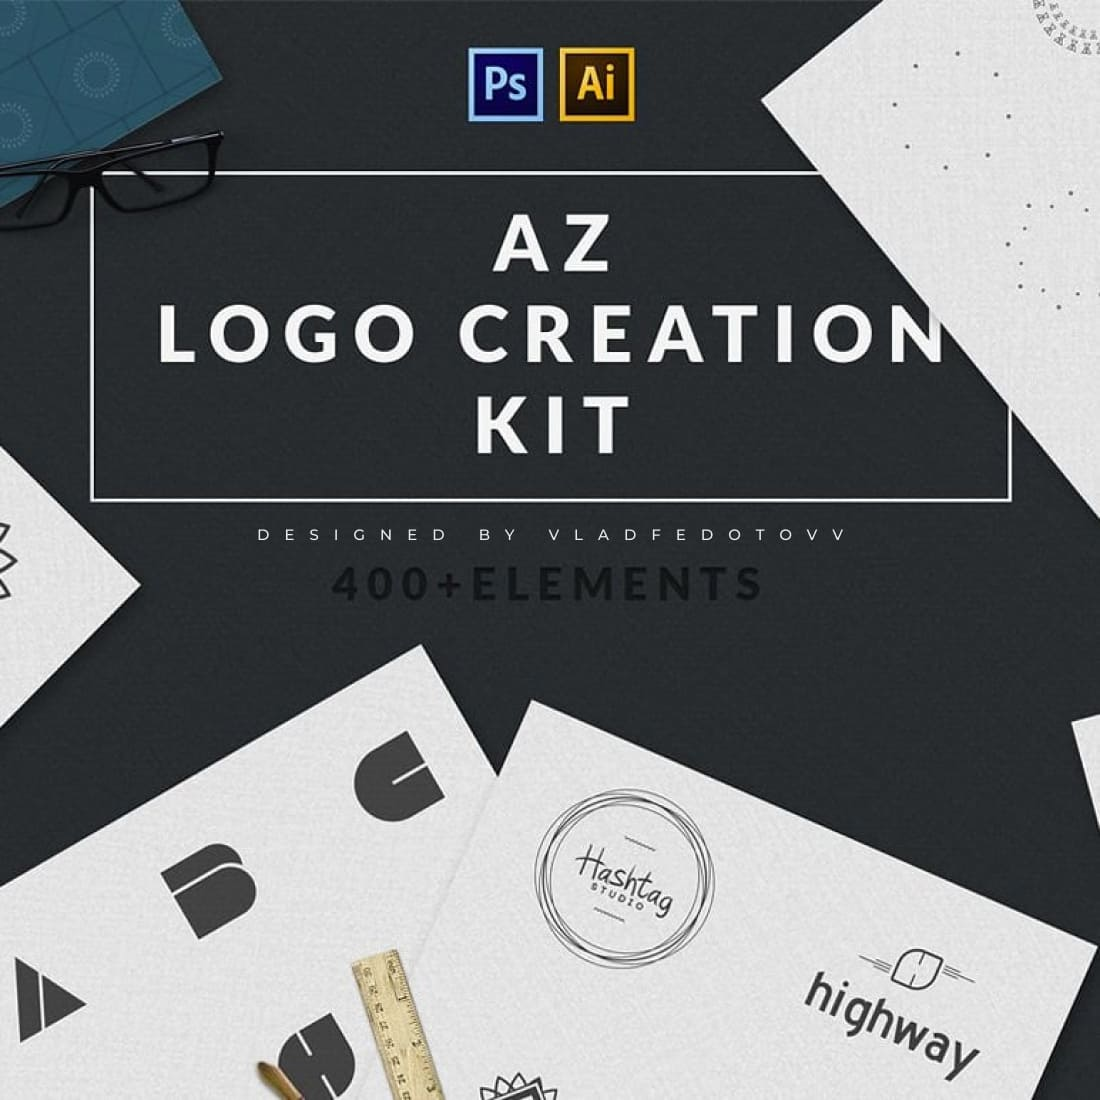 Logo Creation Kit 409 Elements – just 5 cover image.